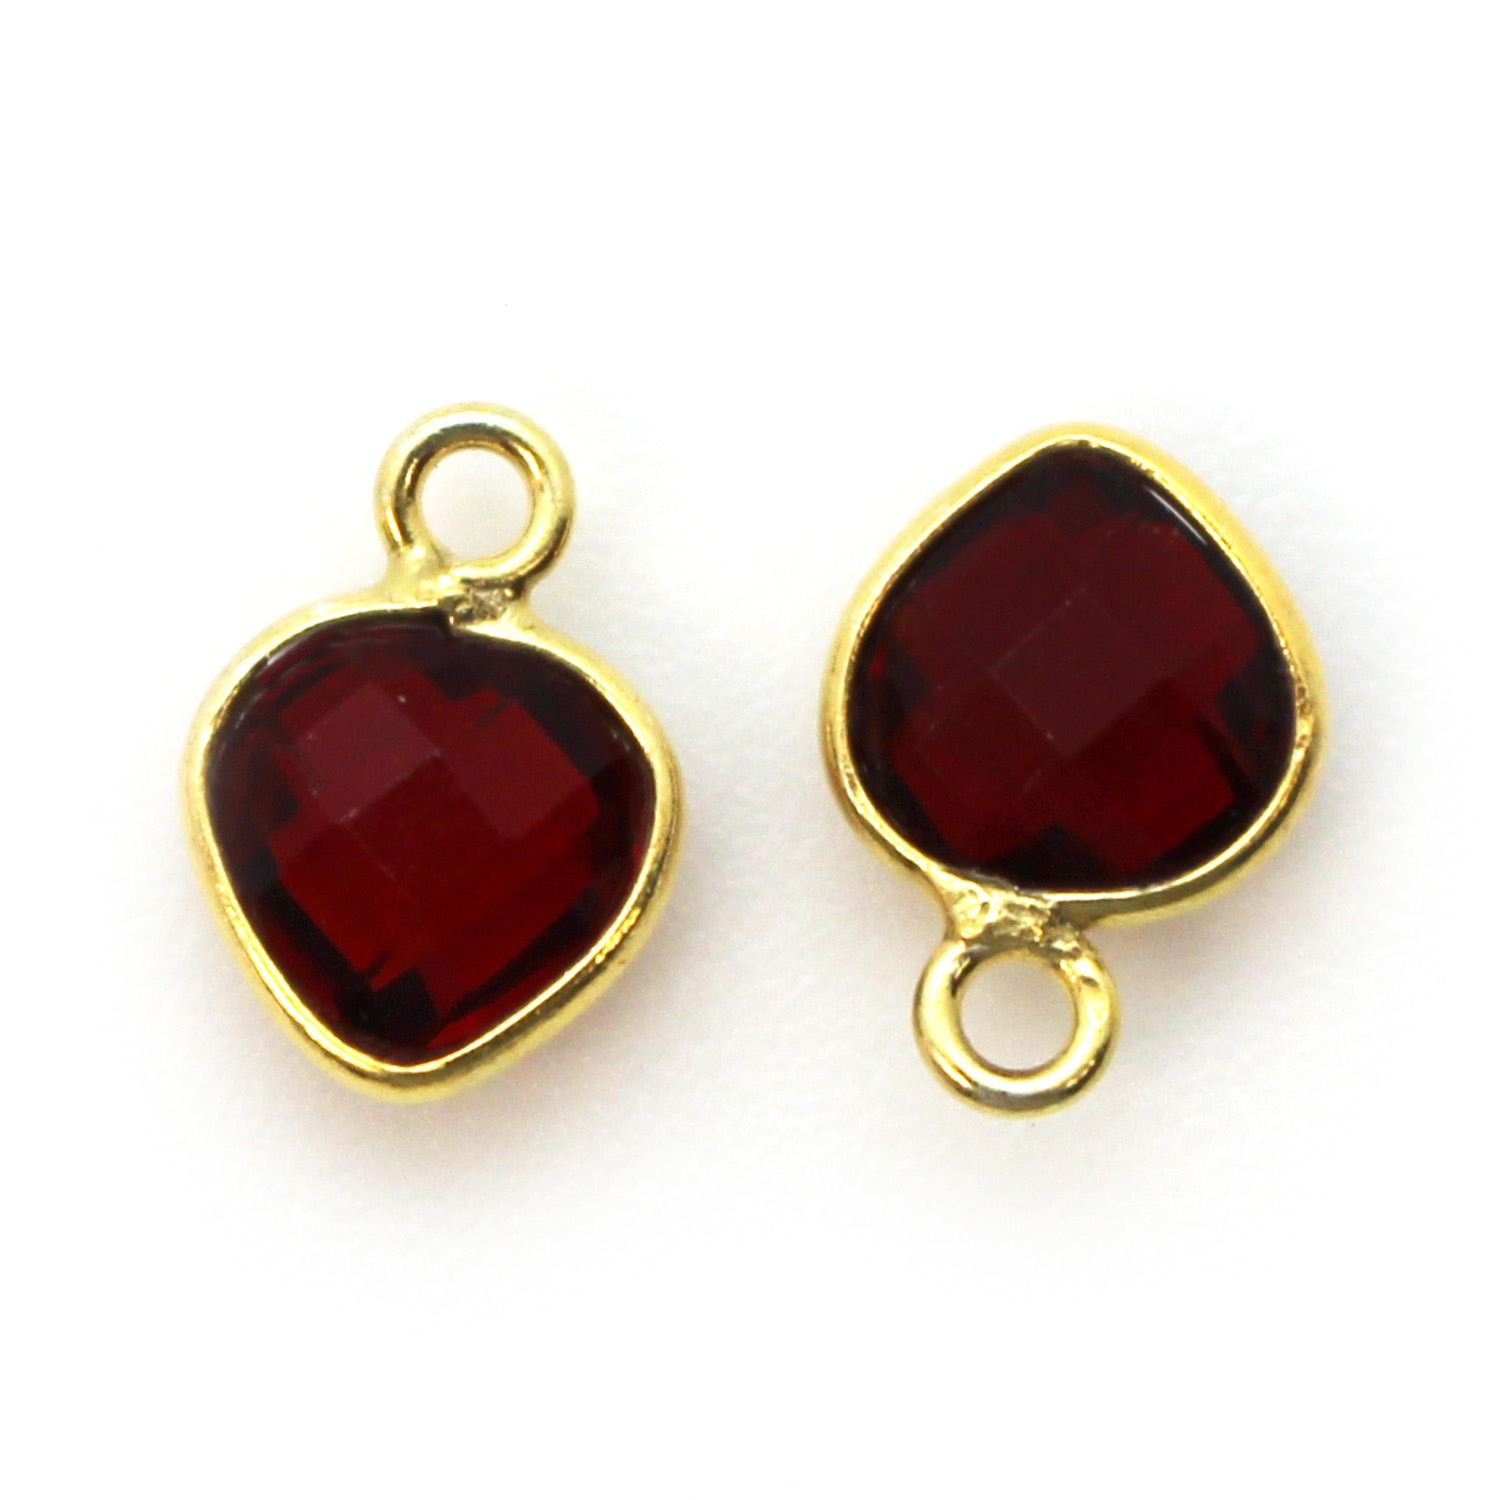 Bezel Gem Pendant-Gold Plated Sterling Silver- 10x7mm Tiny Heart Shape- Garnet (sold per 2 pieces)